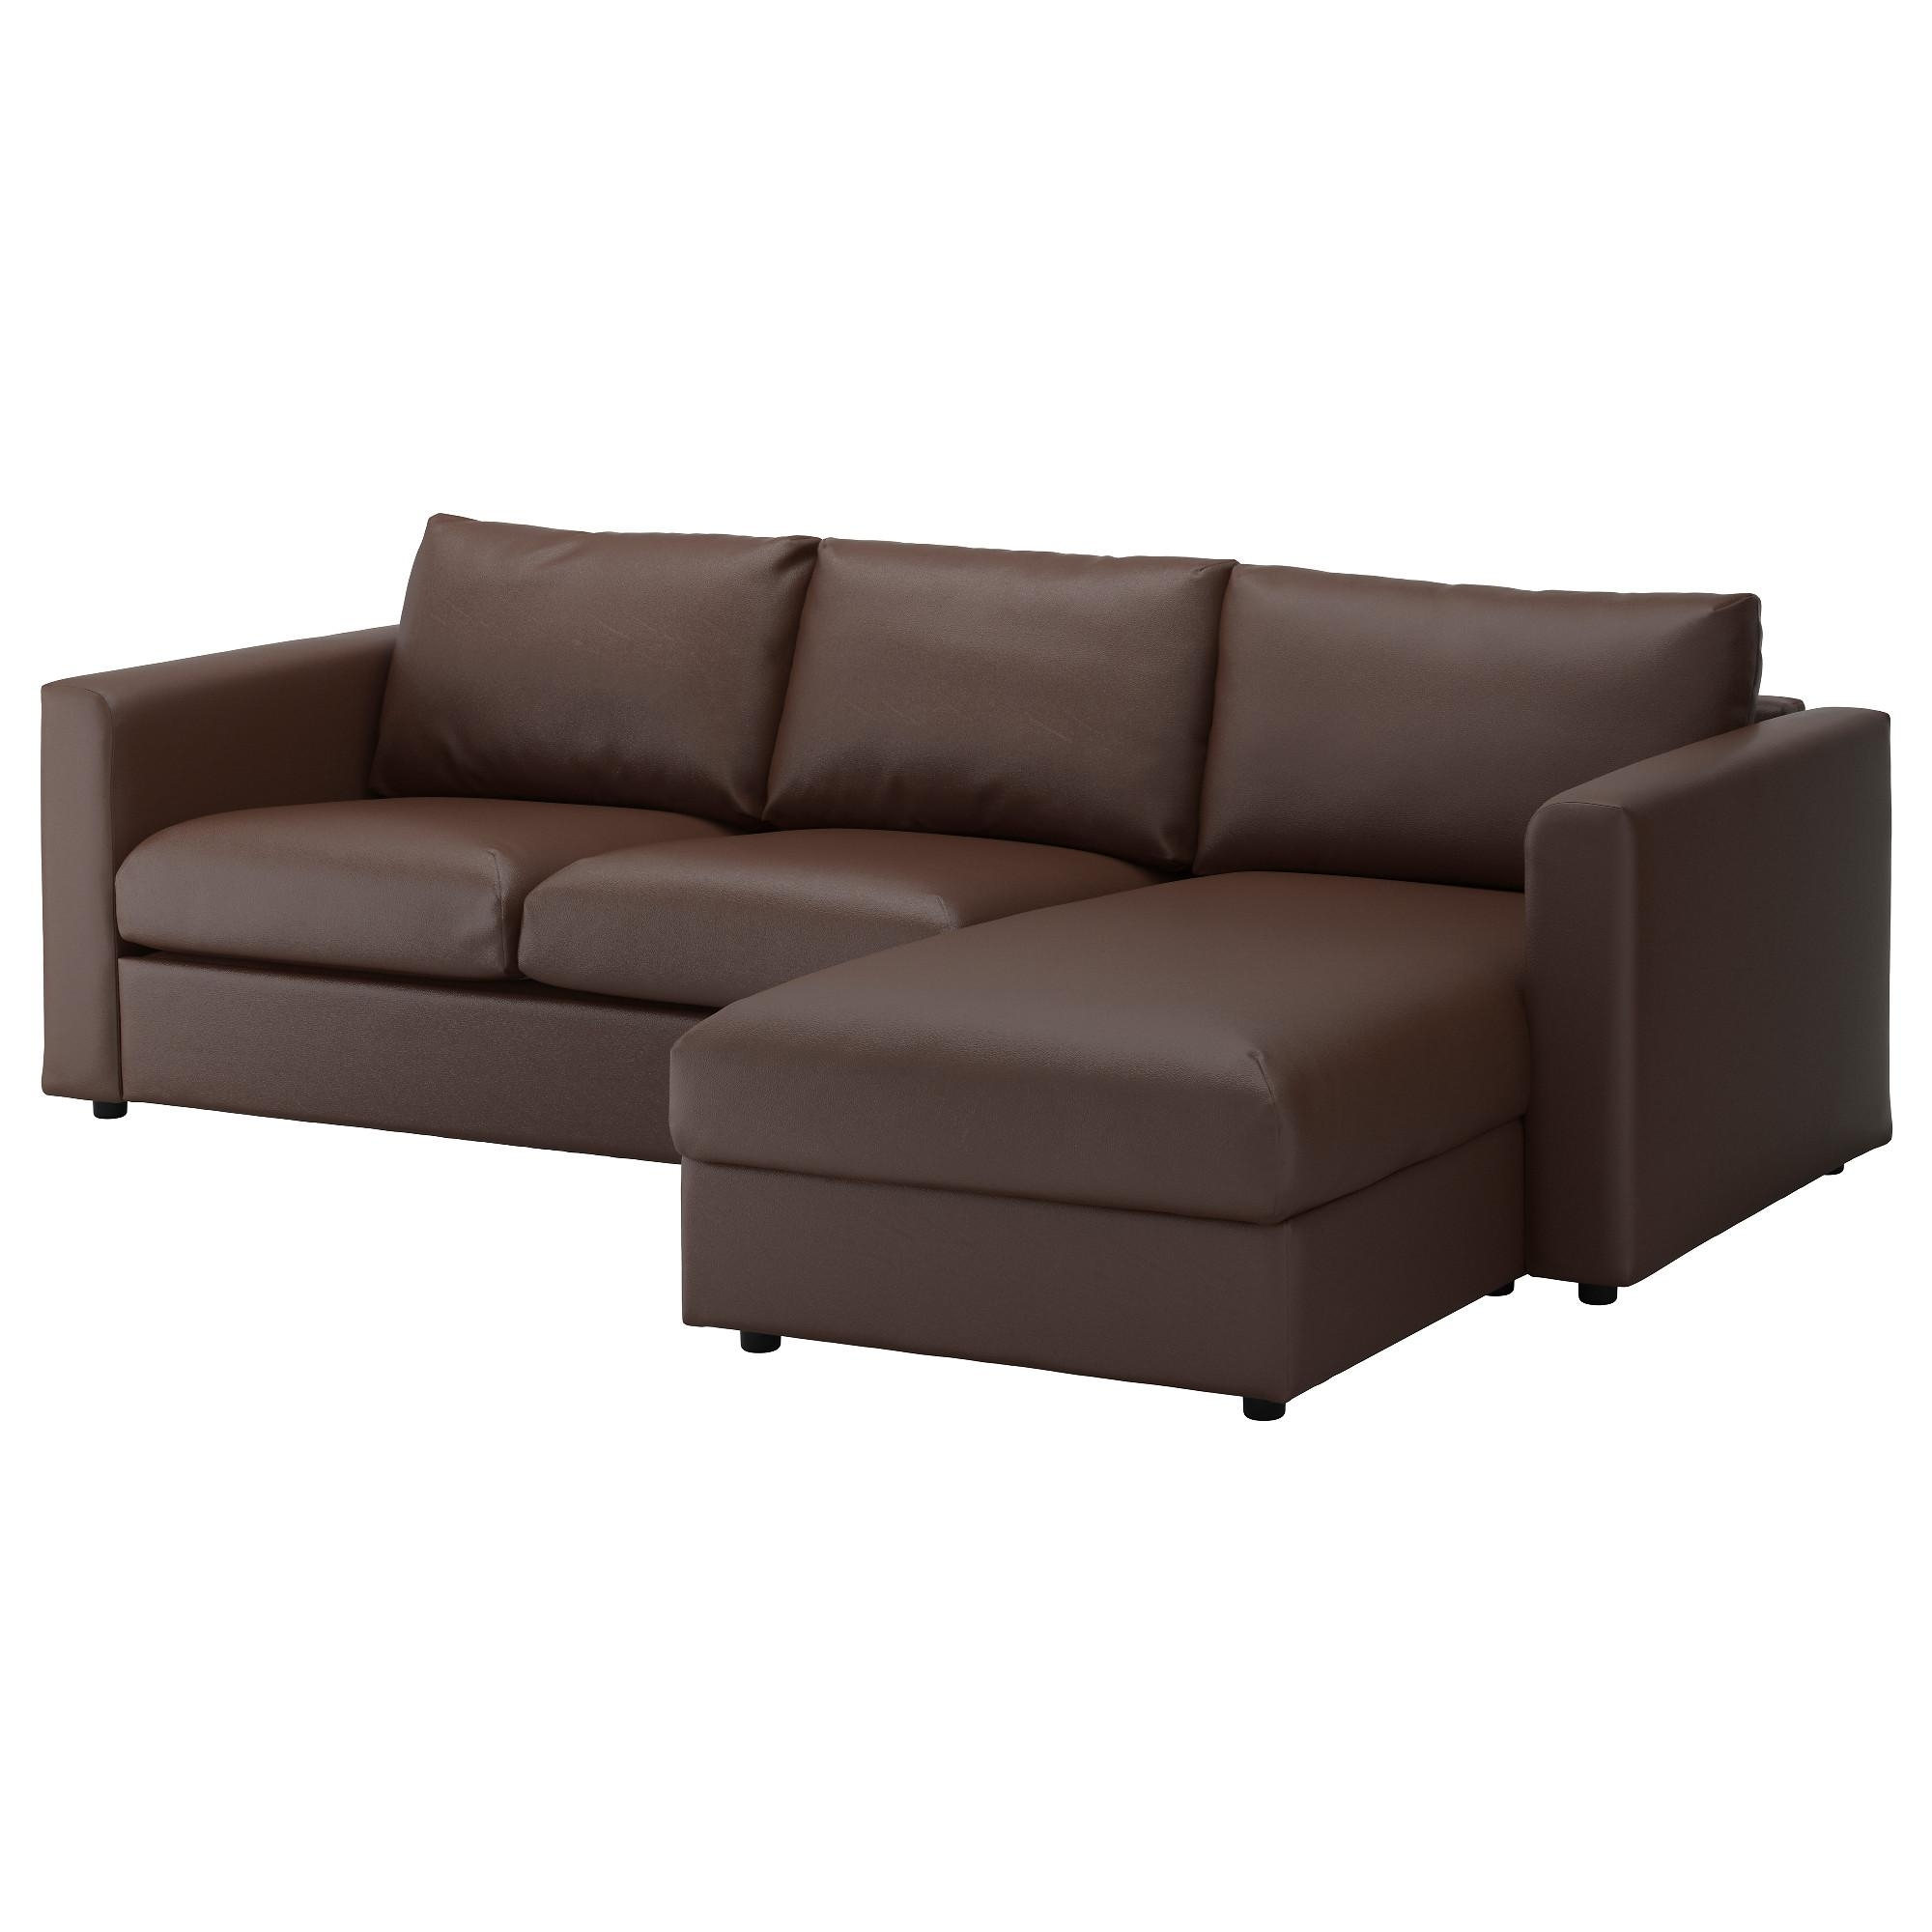 Sectional Sofas & Couches – Ikea Intended For Pit Sofas (Image 18 of 20)